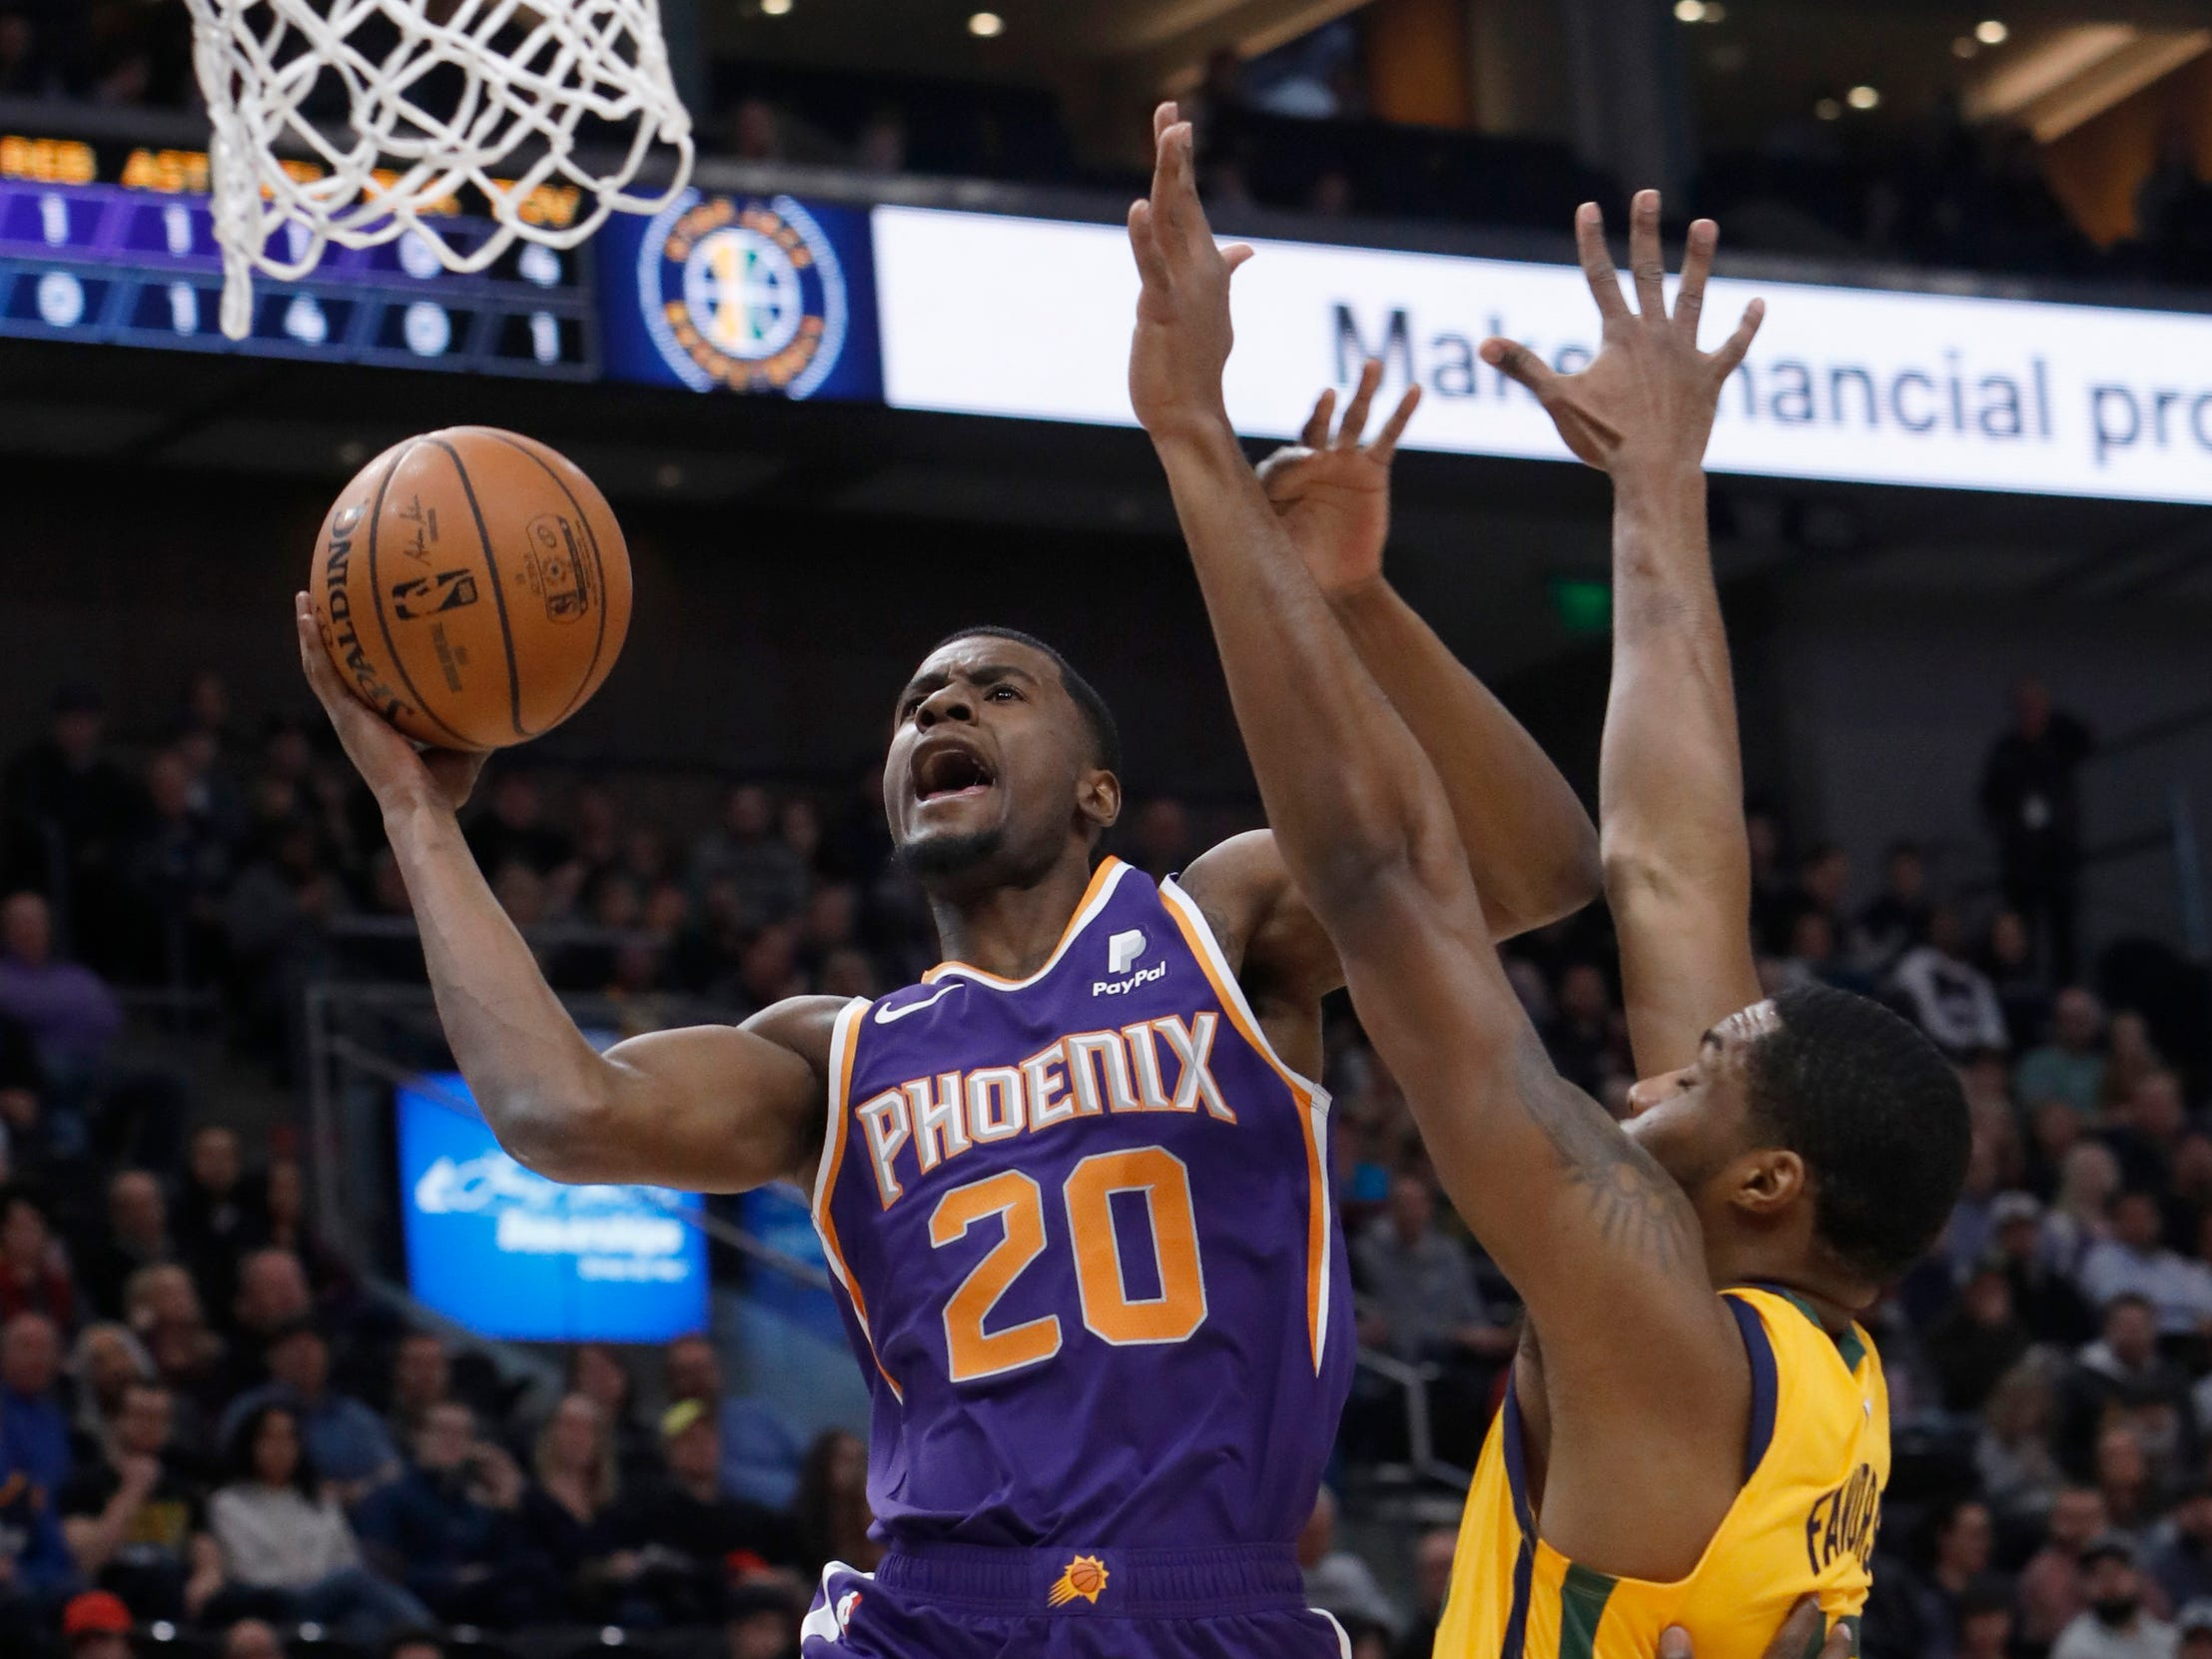 Phoenix Suns' Josh Jackson (20) attempts a layup as Utah Jazz forward Derrick Favors, right, defends in the first half of an NBA basketball game on Wednesday, Feb. 6, 2019, in Salt Lake City. (AP Photo/Kim Raff)